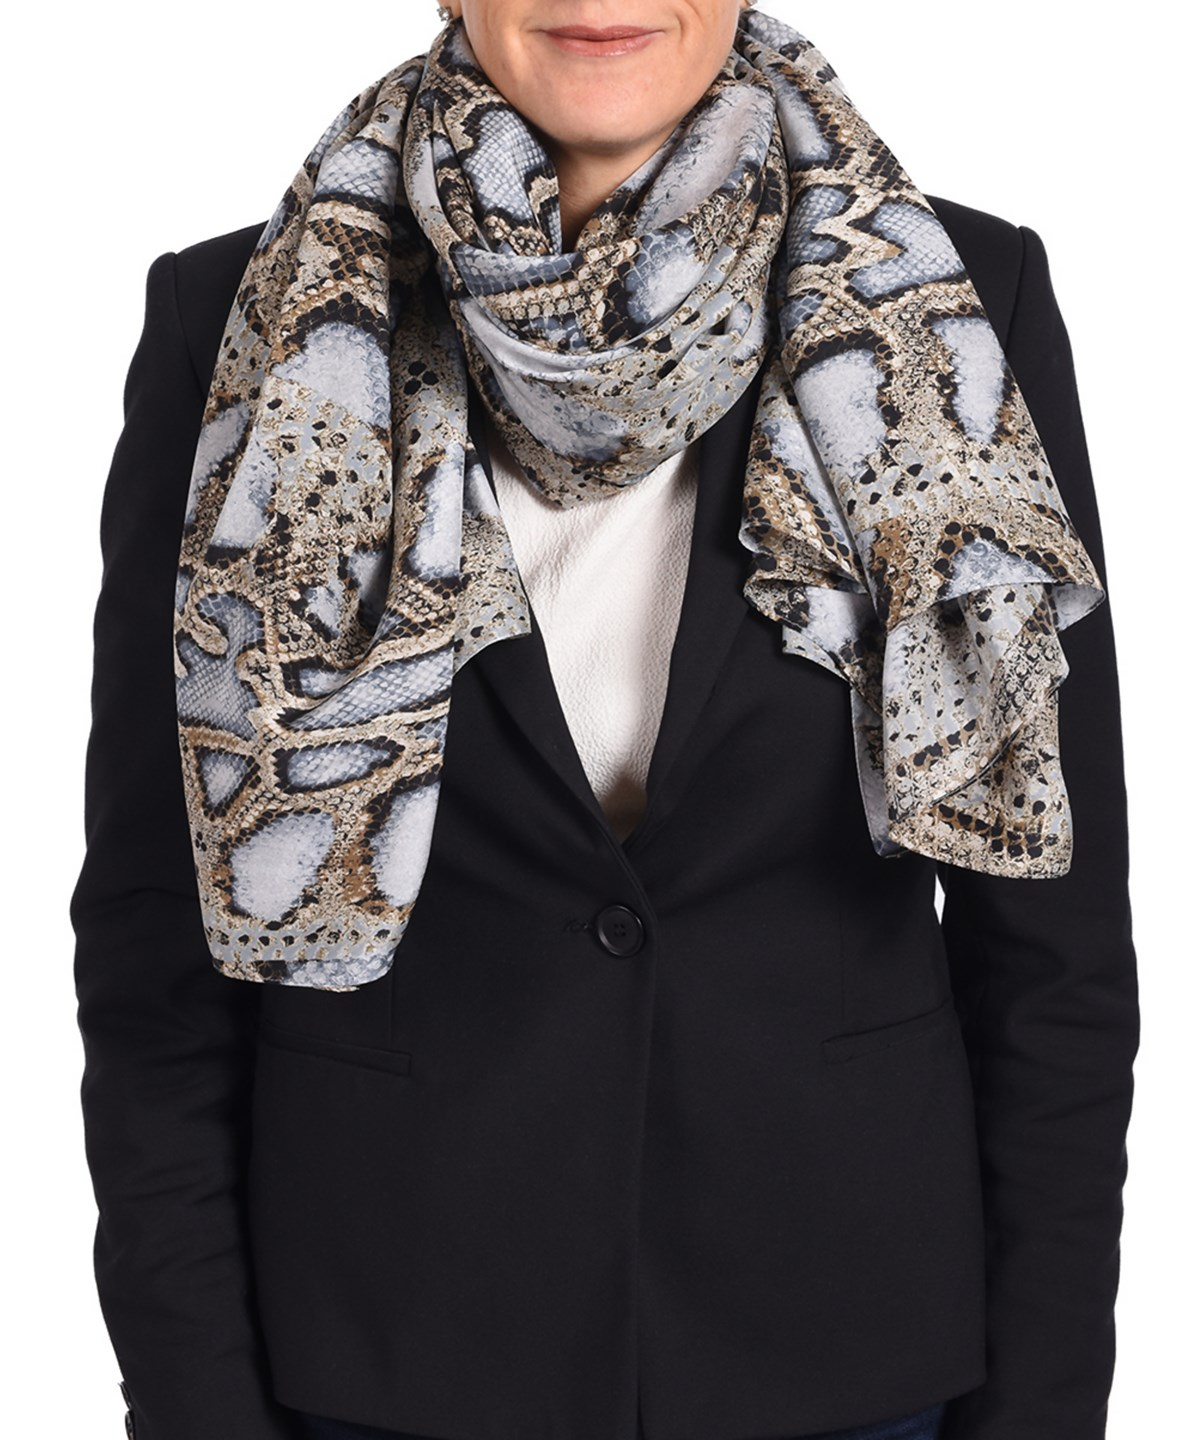 ROBERTO CAVALLI Women'S Snake Skin Patterned Silk Scarf' in Multiple Colors